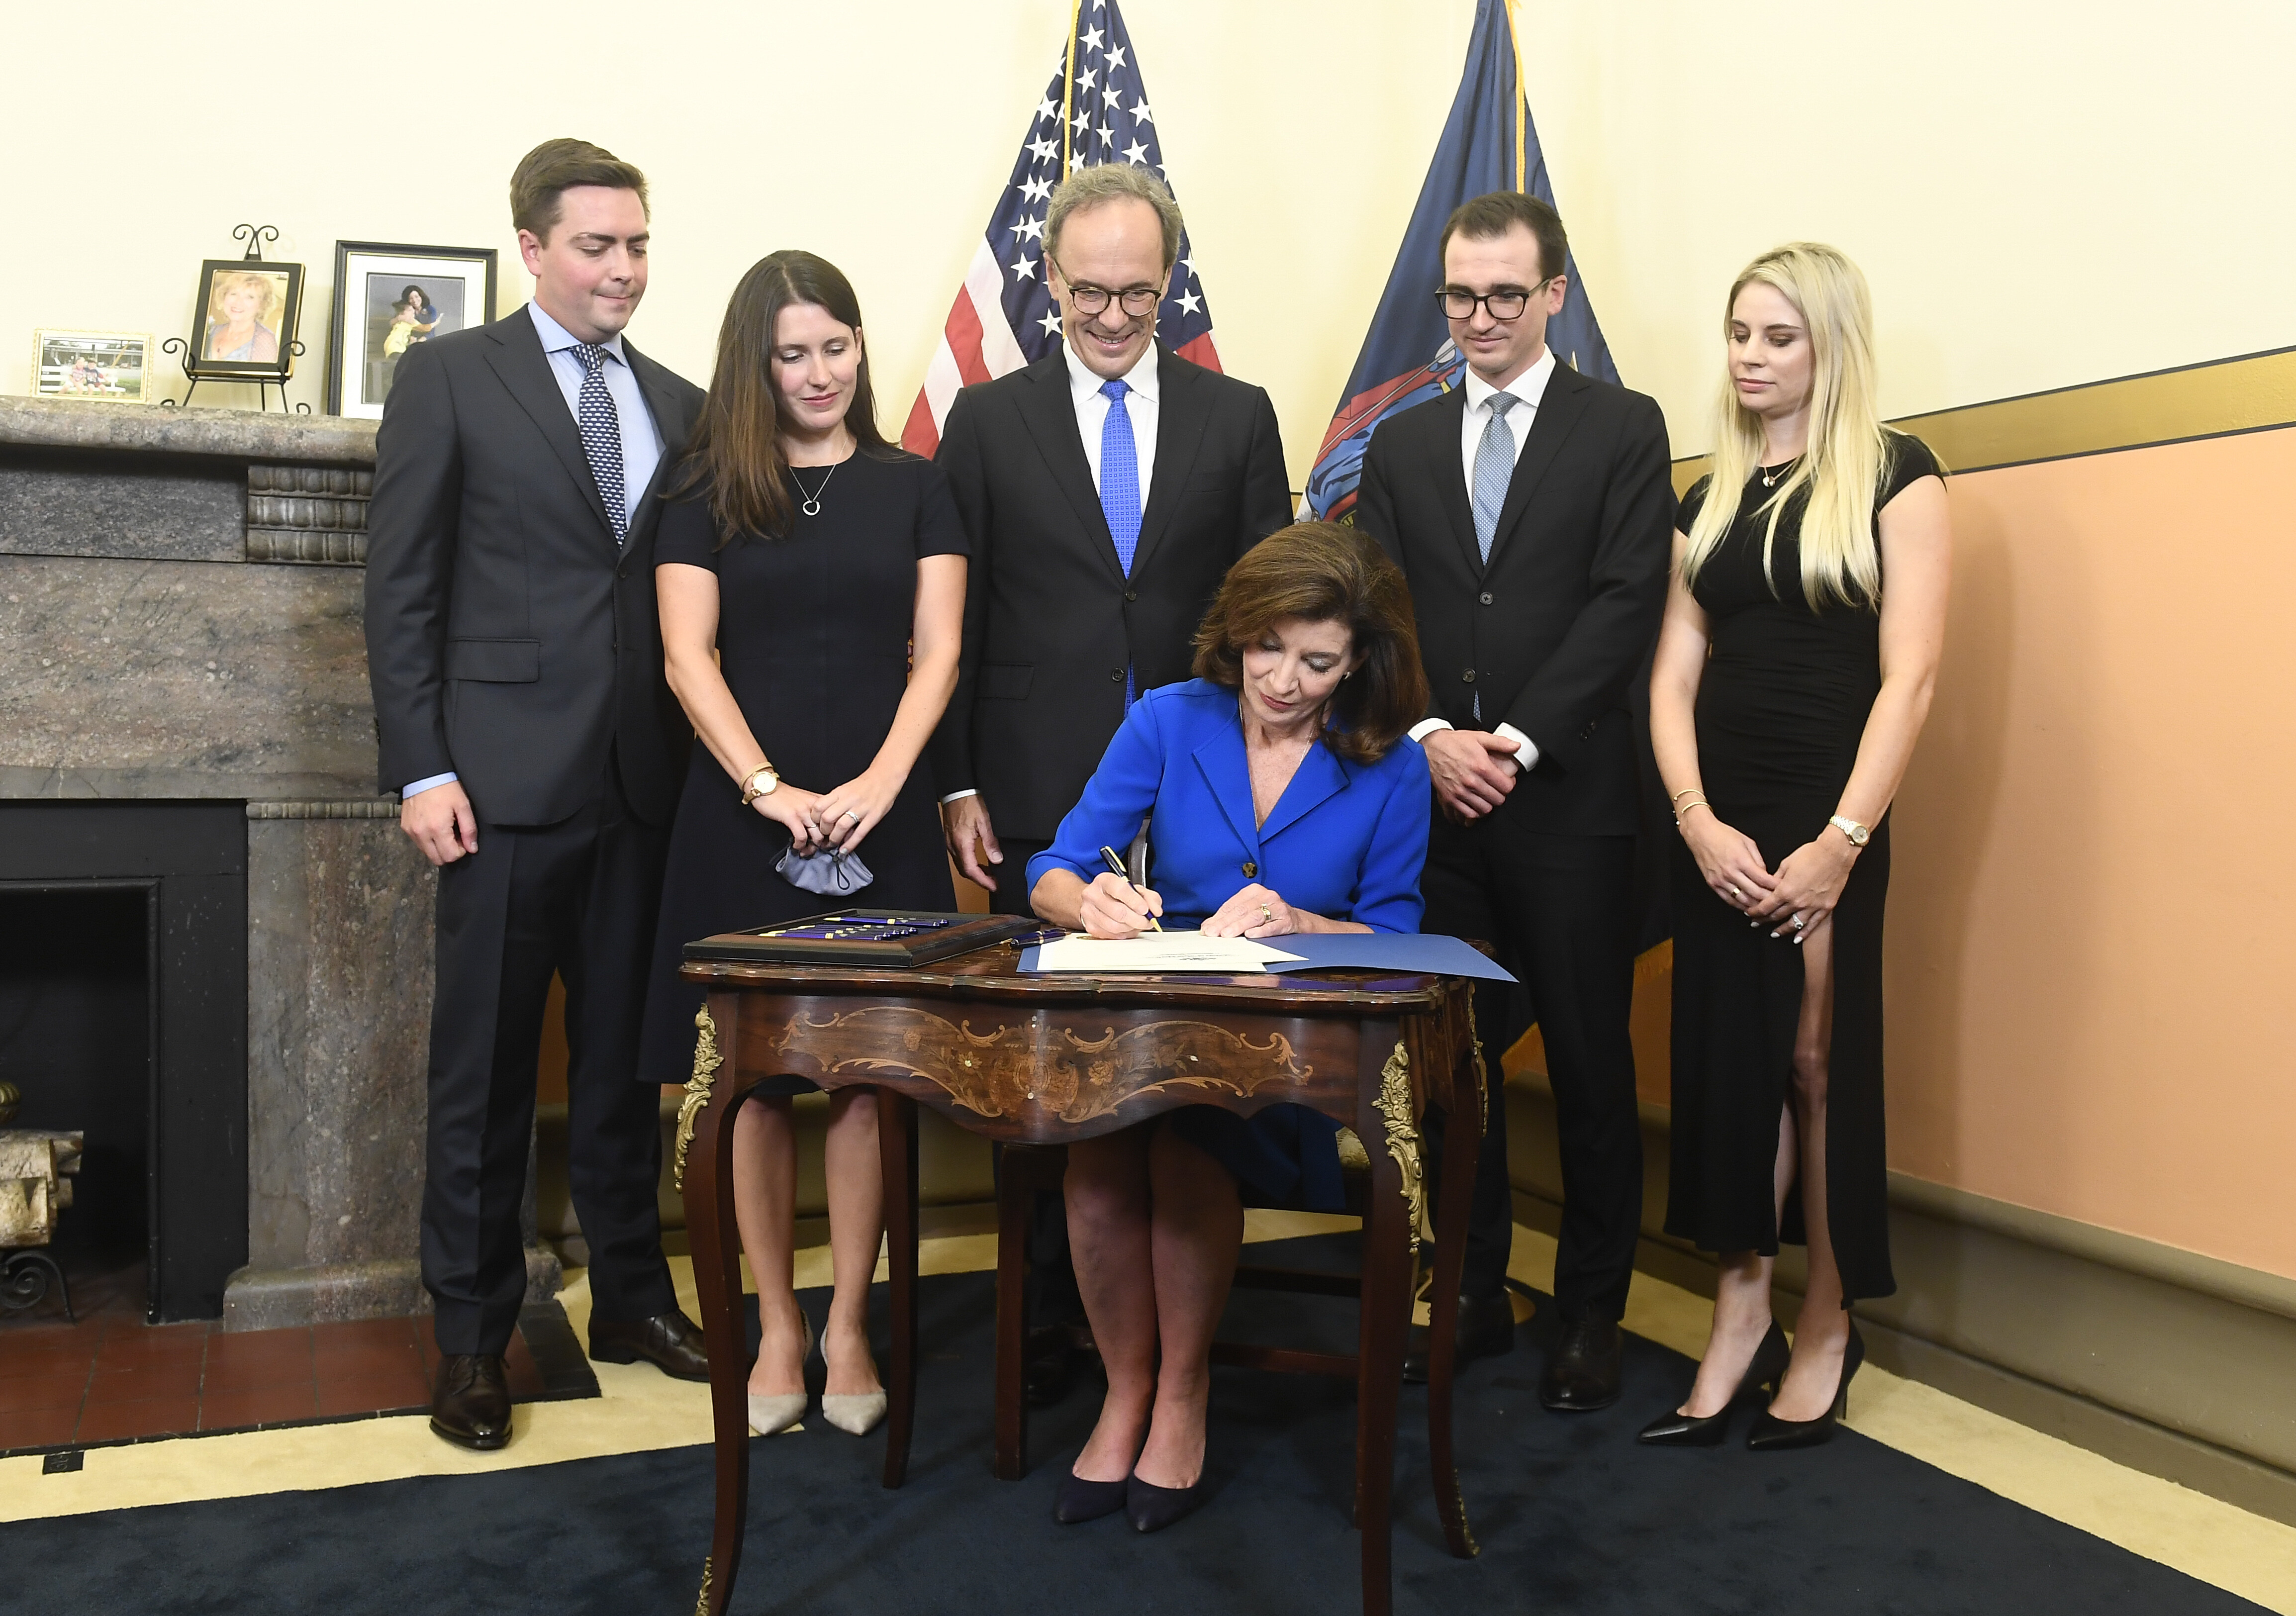 Kathy Hochul becomes governor of New York as Cuomo leaves in disgrace